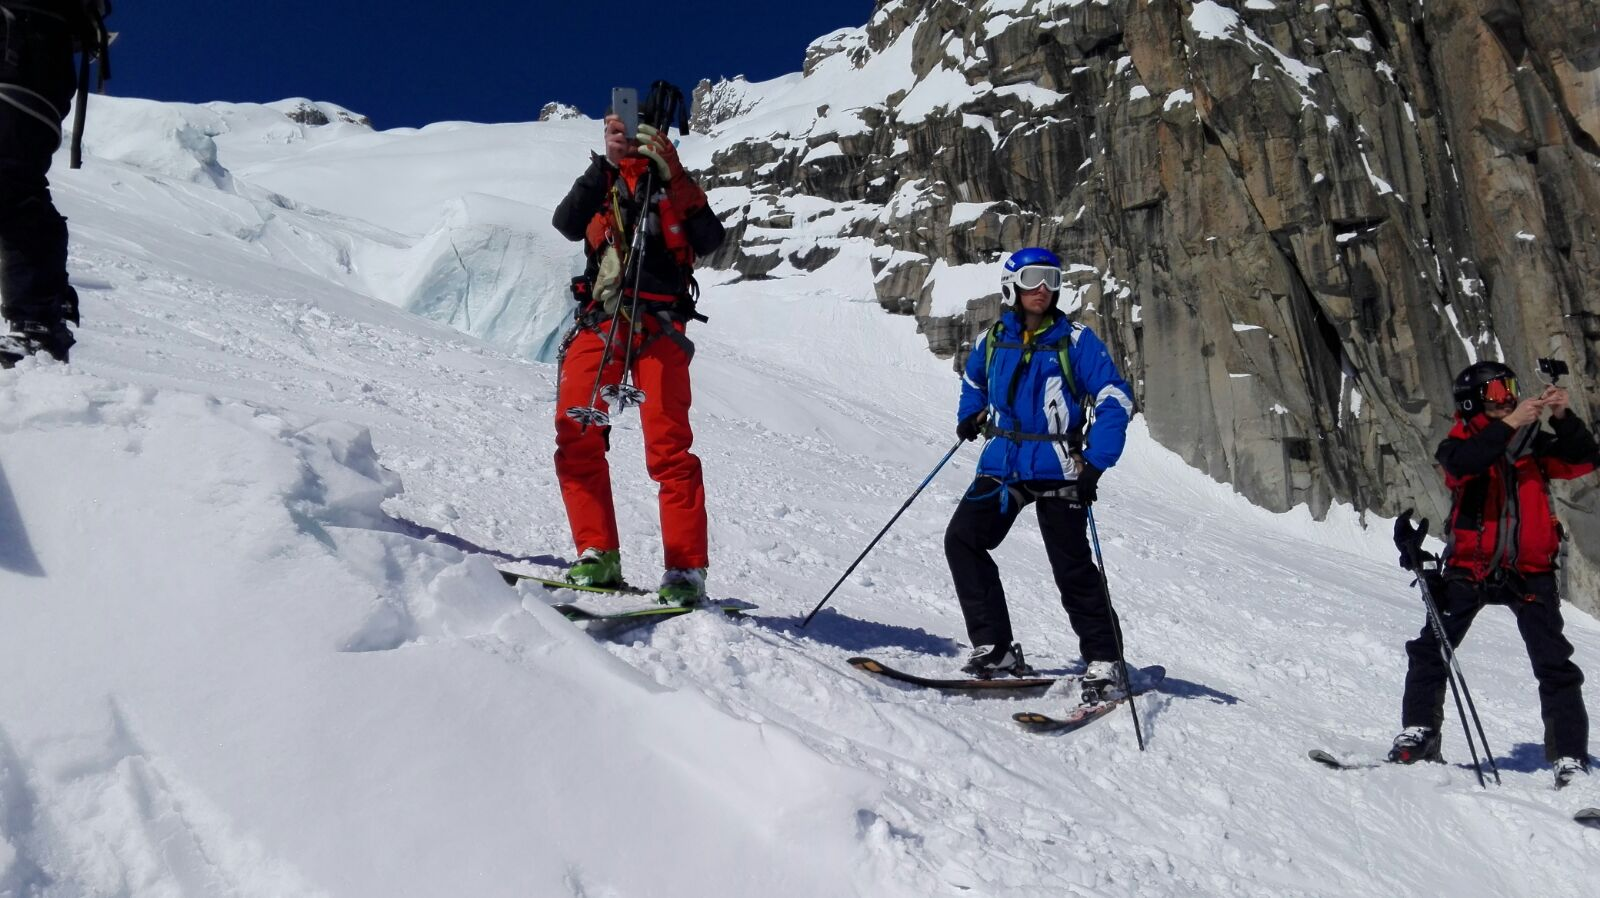 vallee blanche guide alpine proup (51)